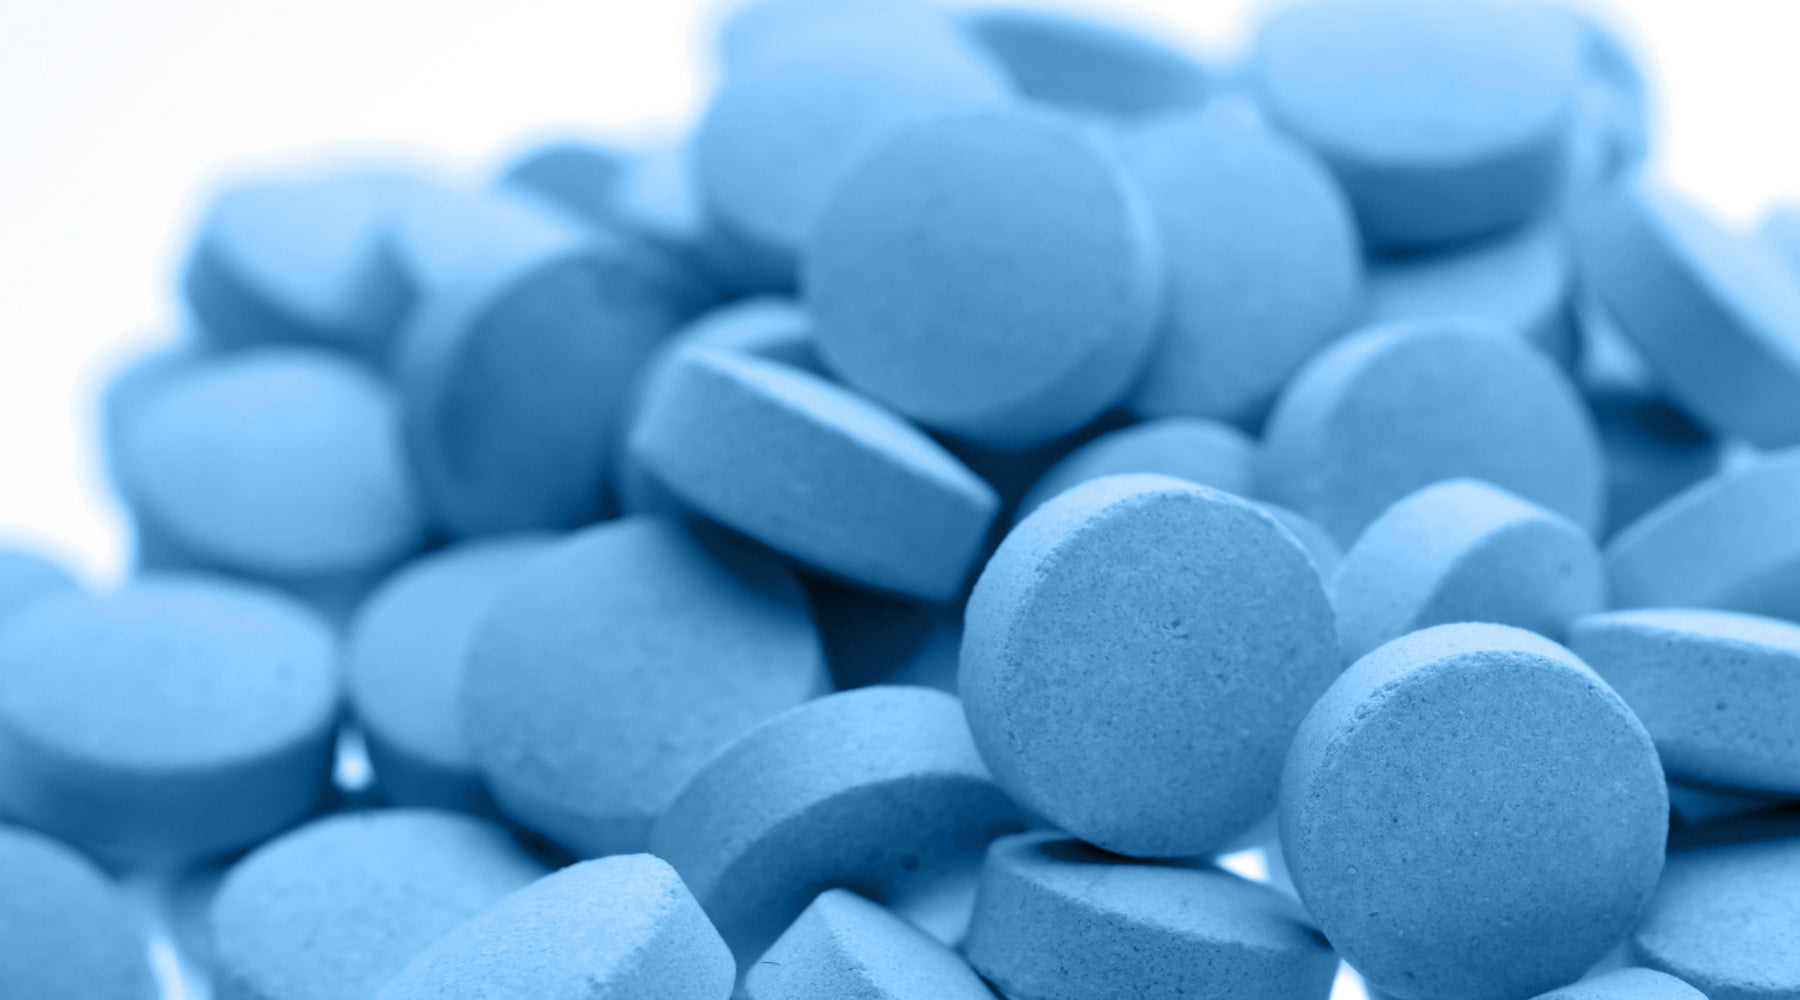 blue zantac pills on white background